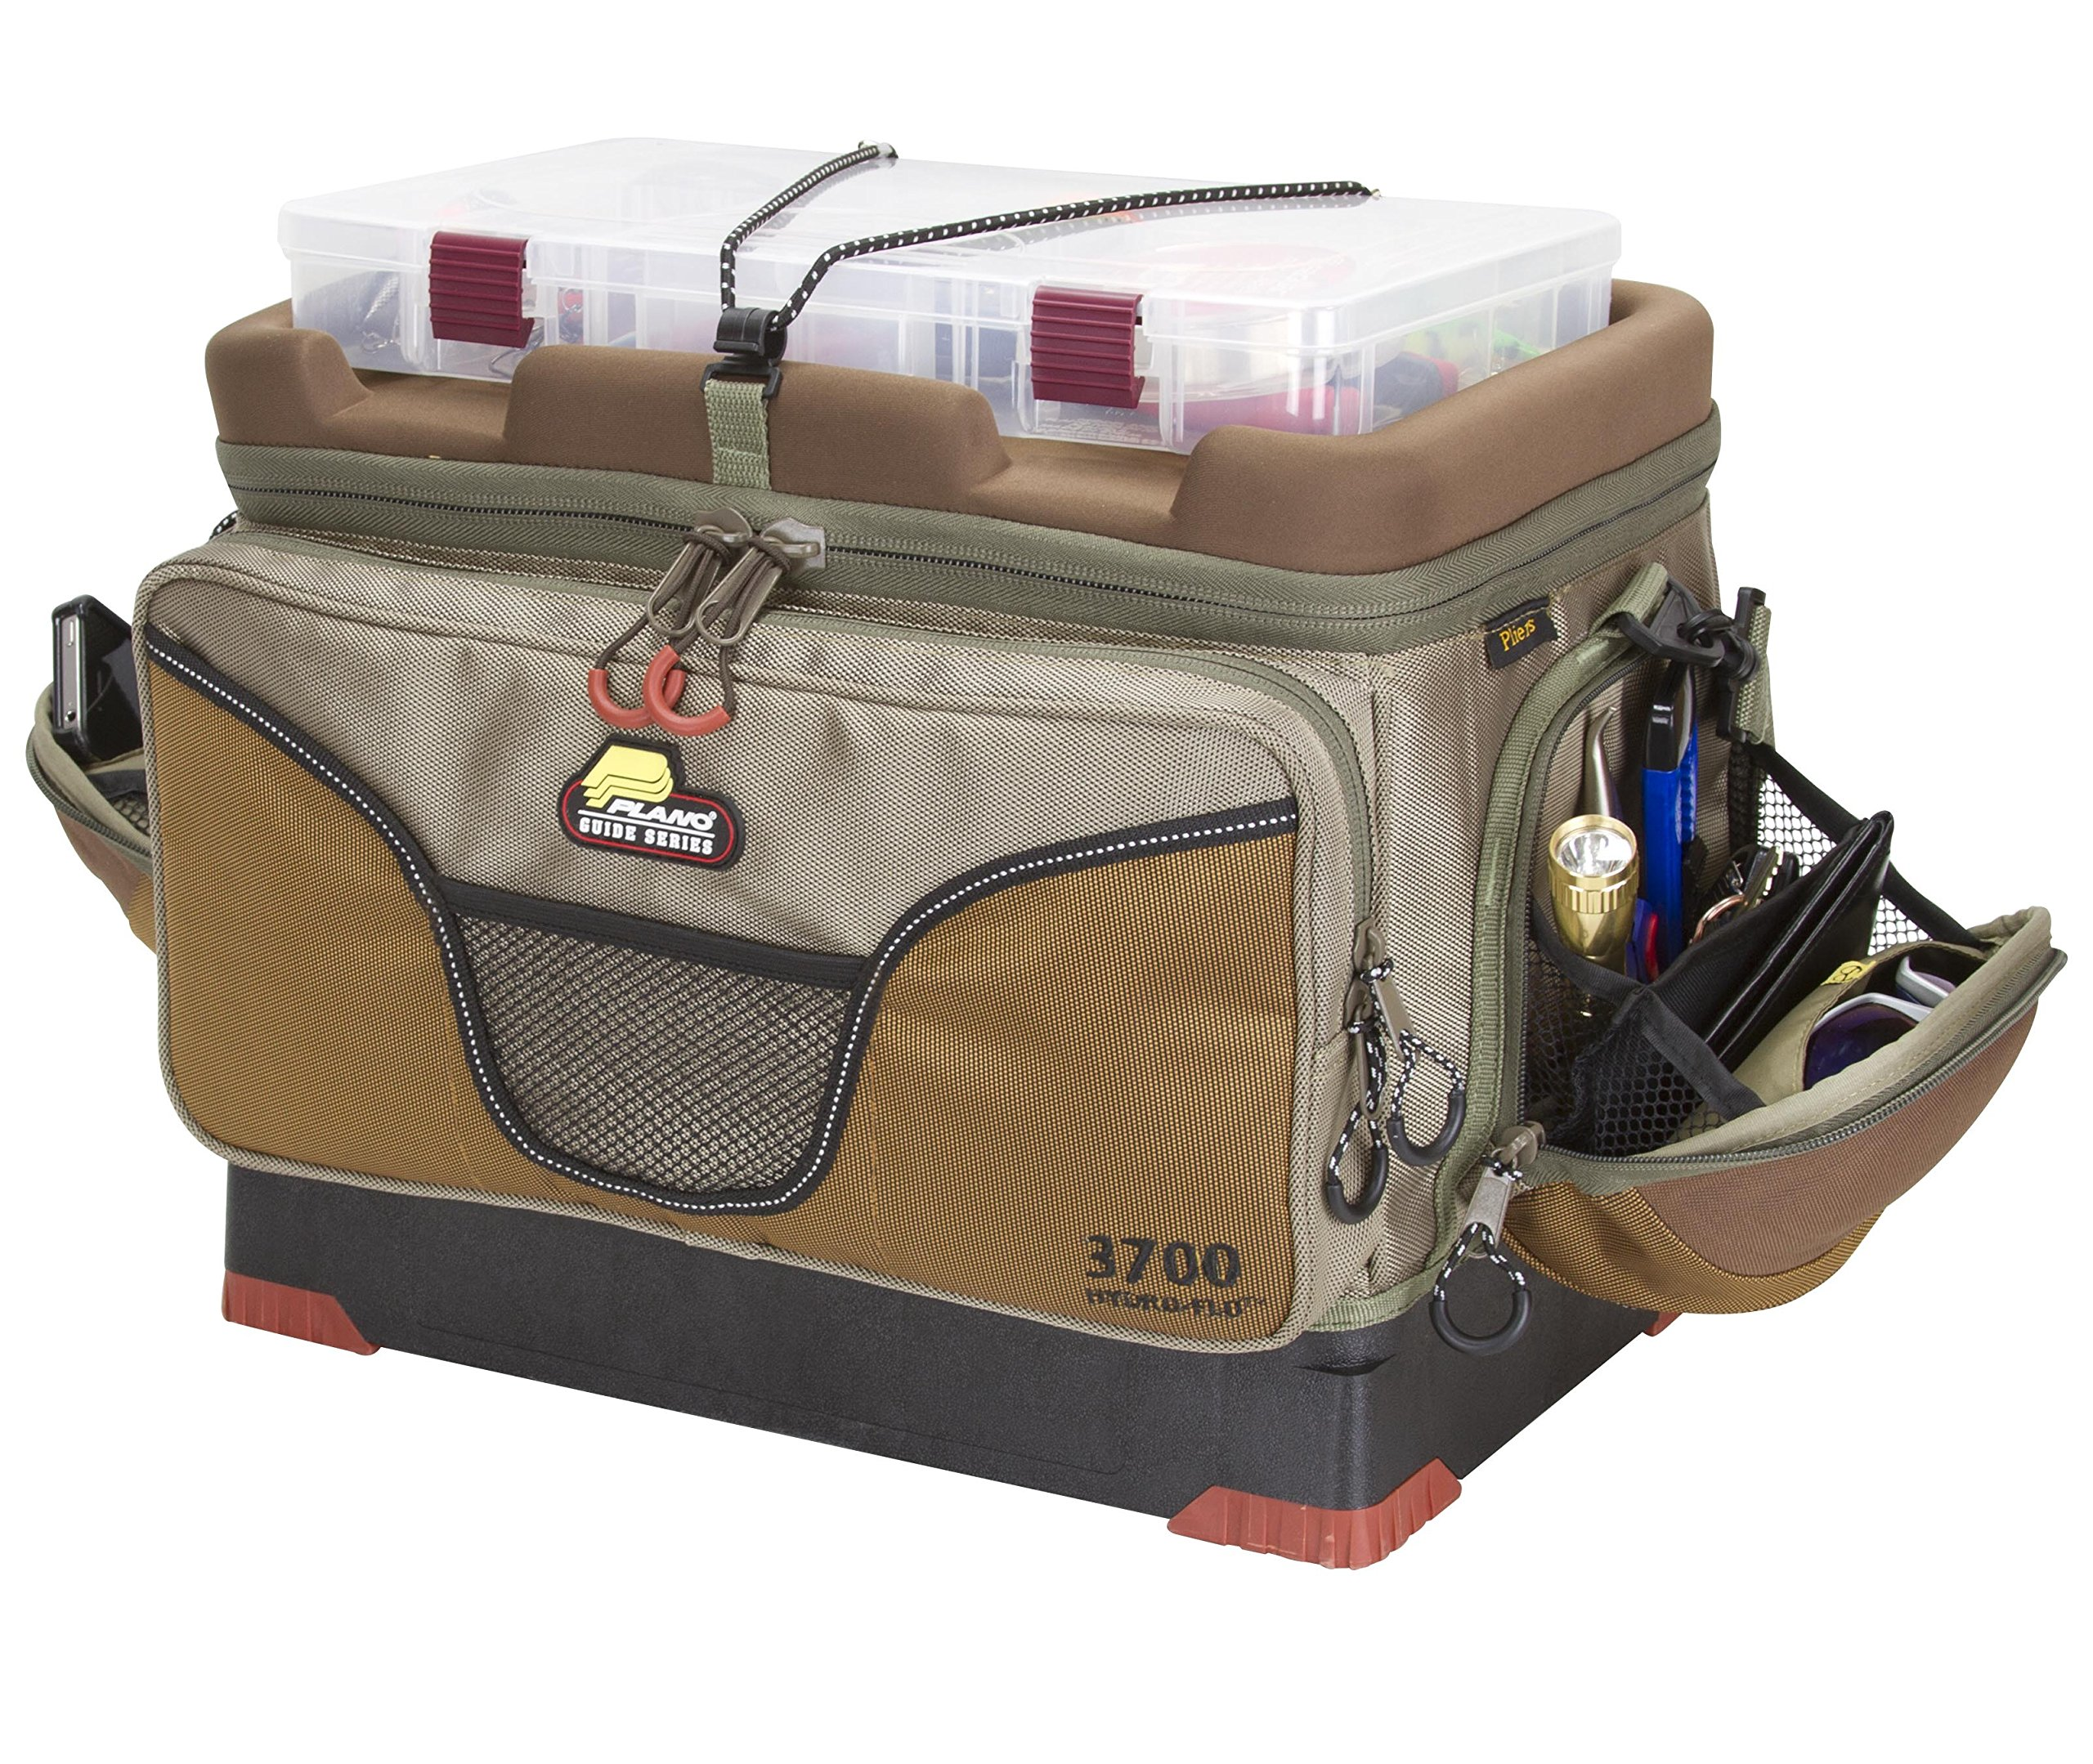 Plano 467410 Hydro-Flo Guide 3700 Series Tackle Bag by Plano